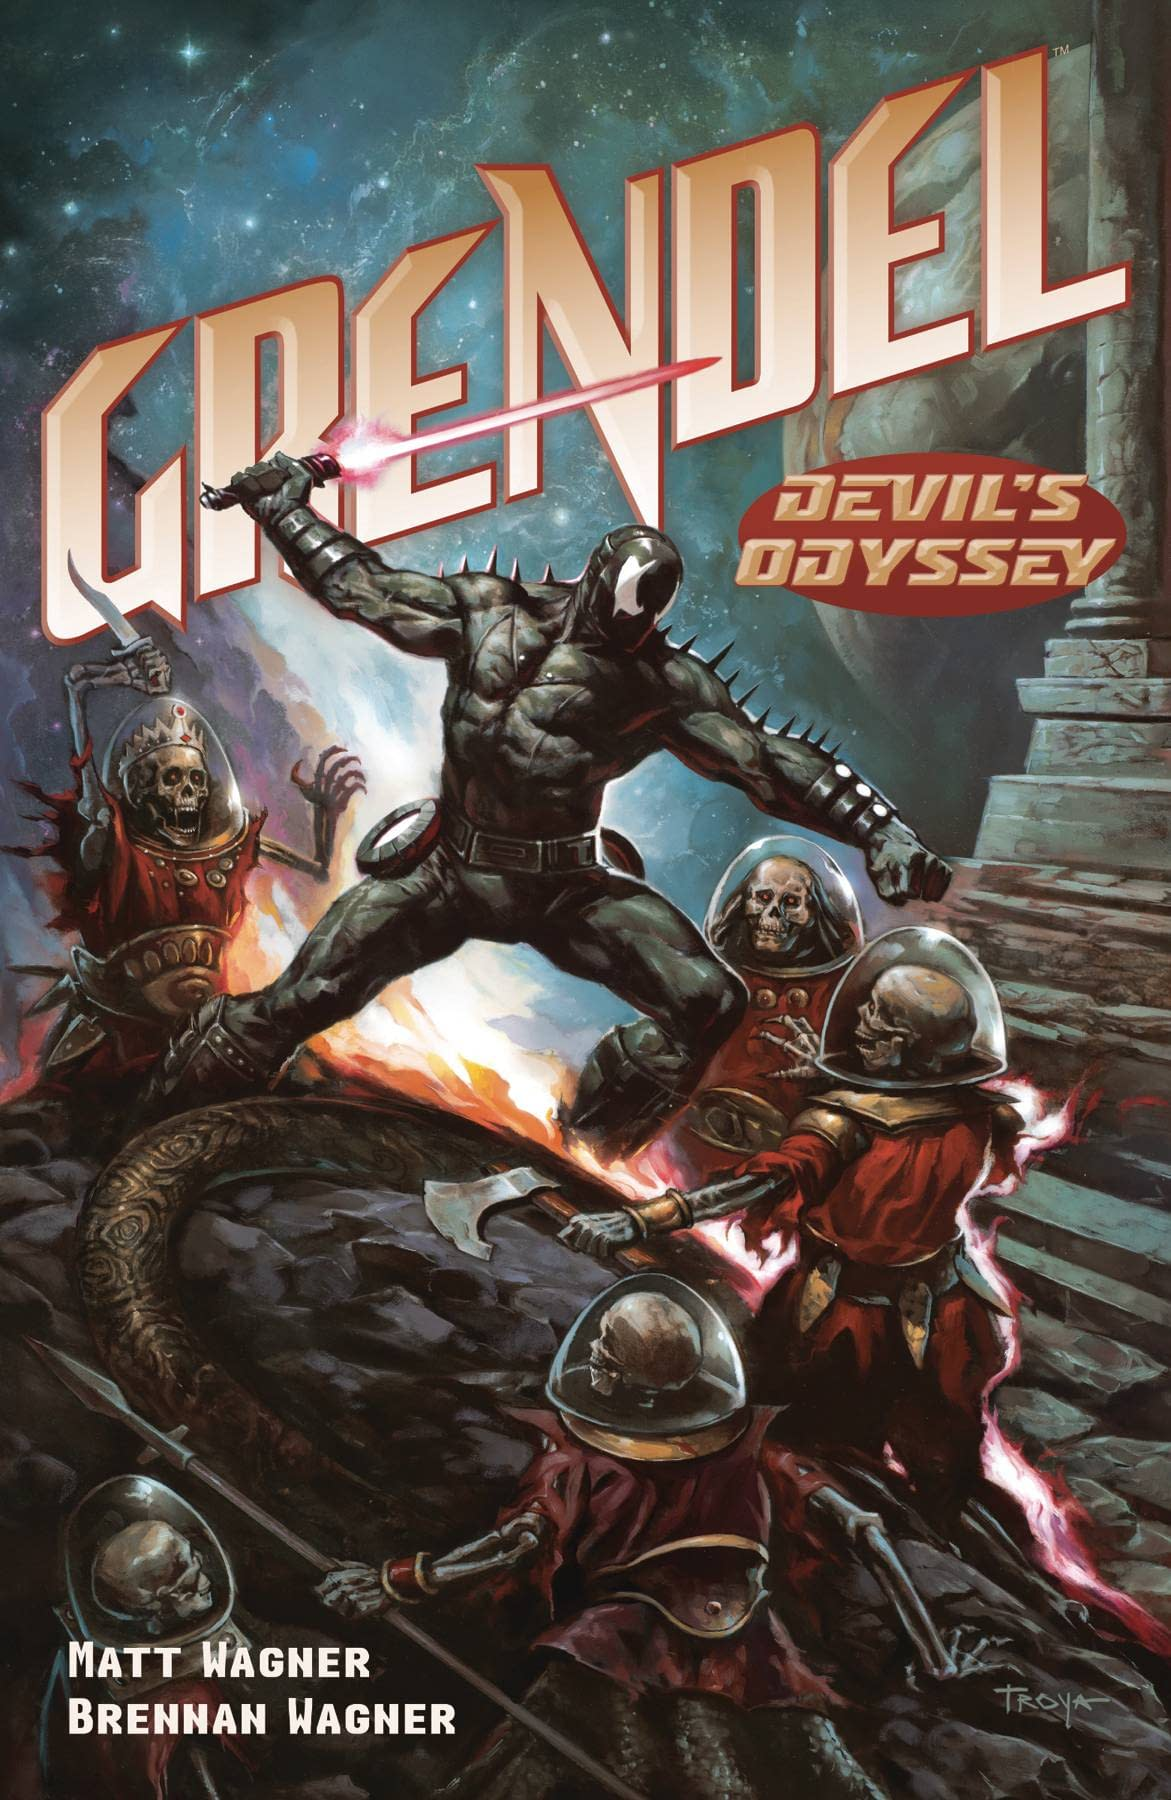 GRENDEL DEVILS ODYSSEY #6 (OF 8) CVR B TROYA (RES) (MR)